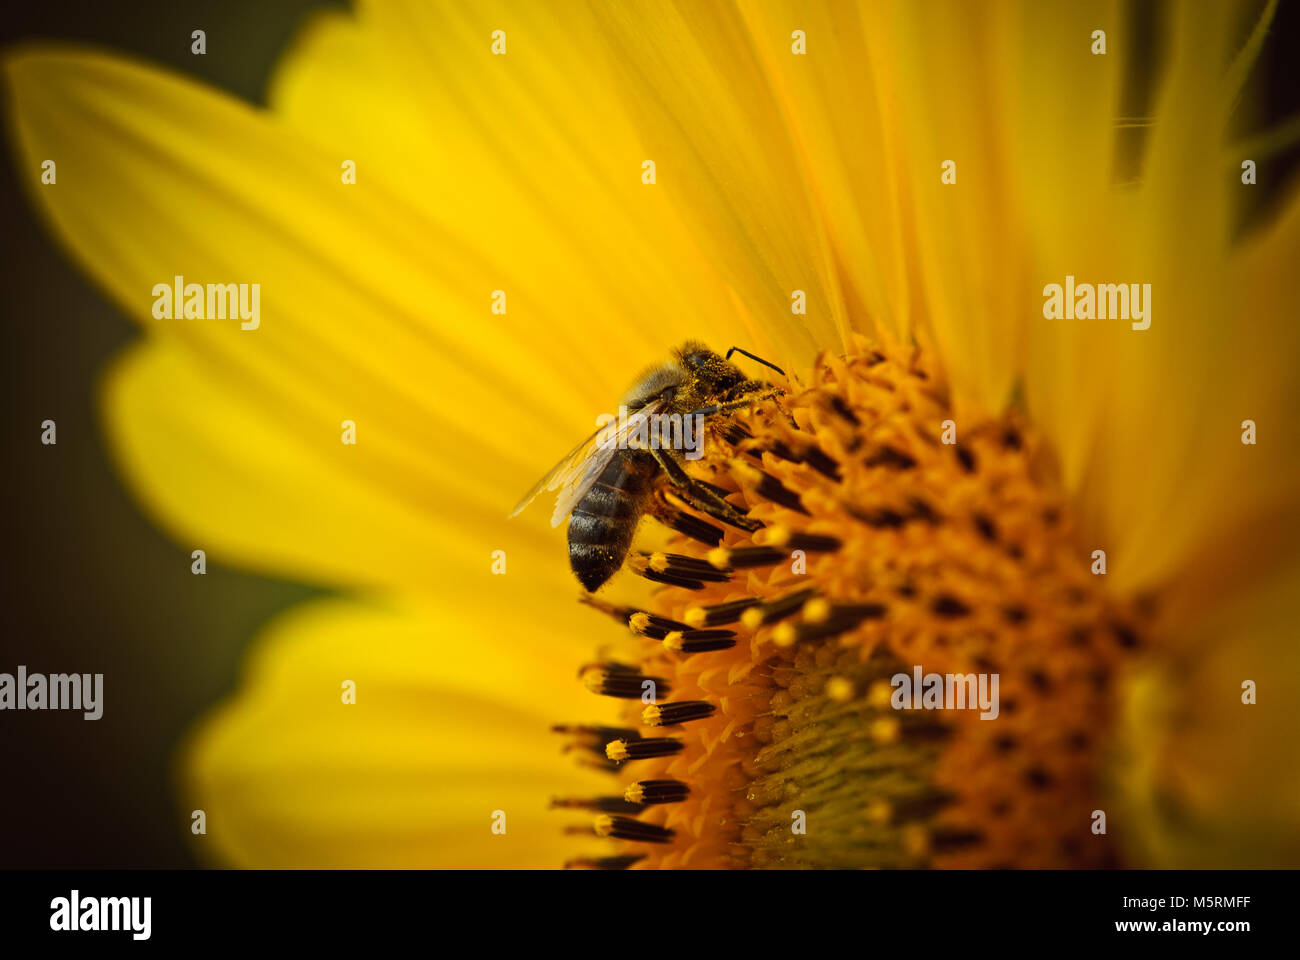 Bee on sunflower flower gathering pollen seeds and nectar - Stock Image